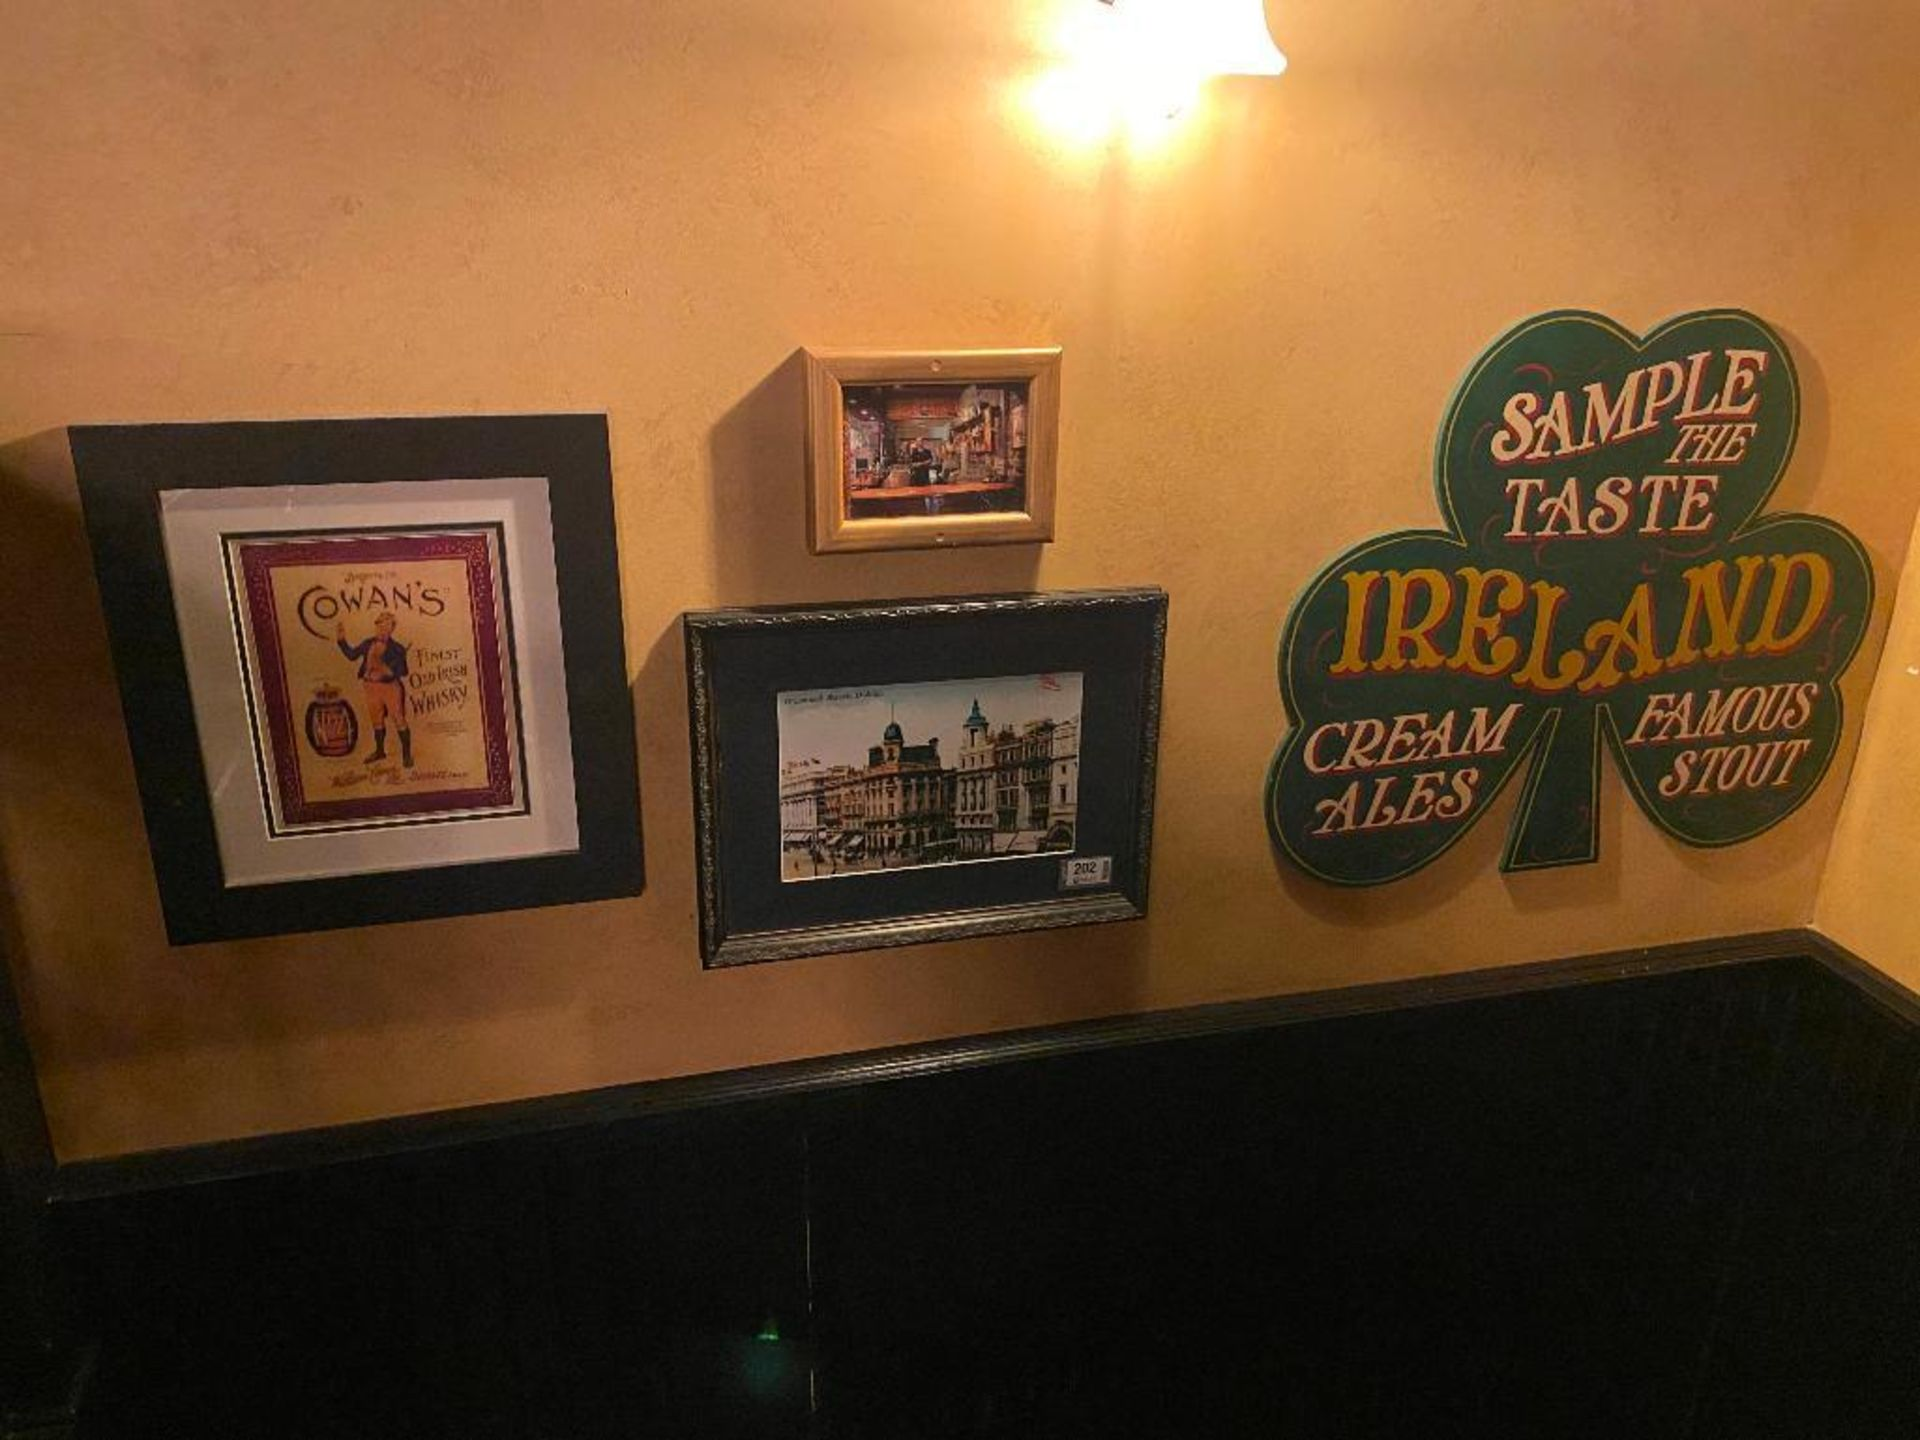 LOT OF (3) FRAMED MEMORABILIA PHOTOS & (1) SAMPLE THE TASTE IRELAND PLAQUE - NOTE: REQUIRES REMOVAL